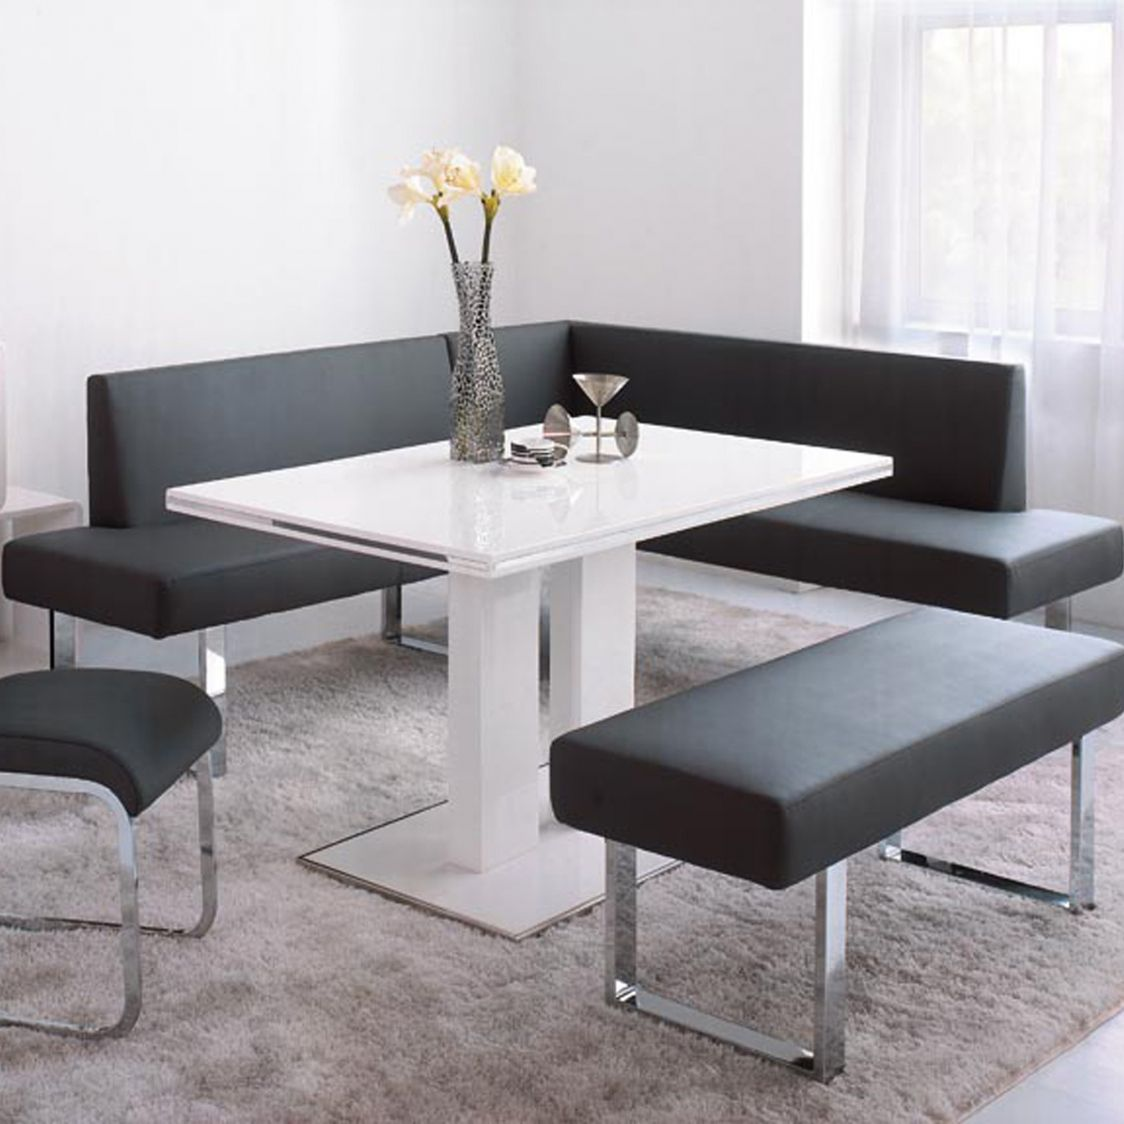 Lovely Sectional Dining Room Table   Best Bedroom Furniture Check More At  Http://1pureedm